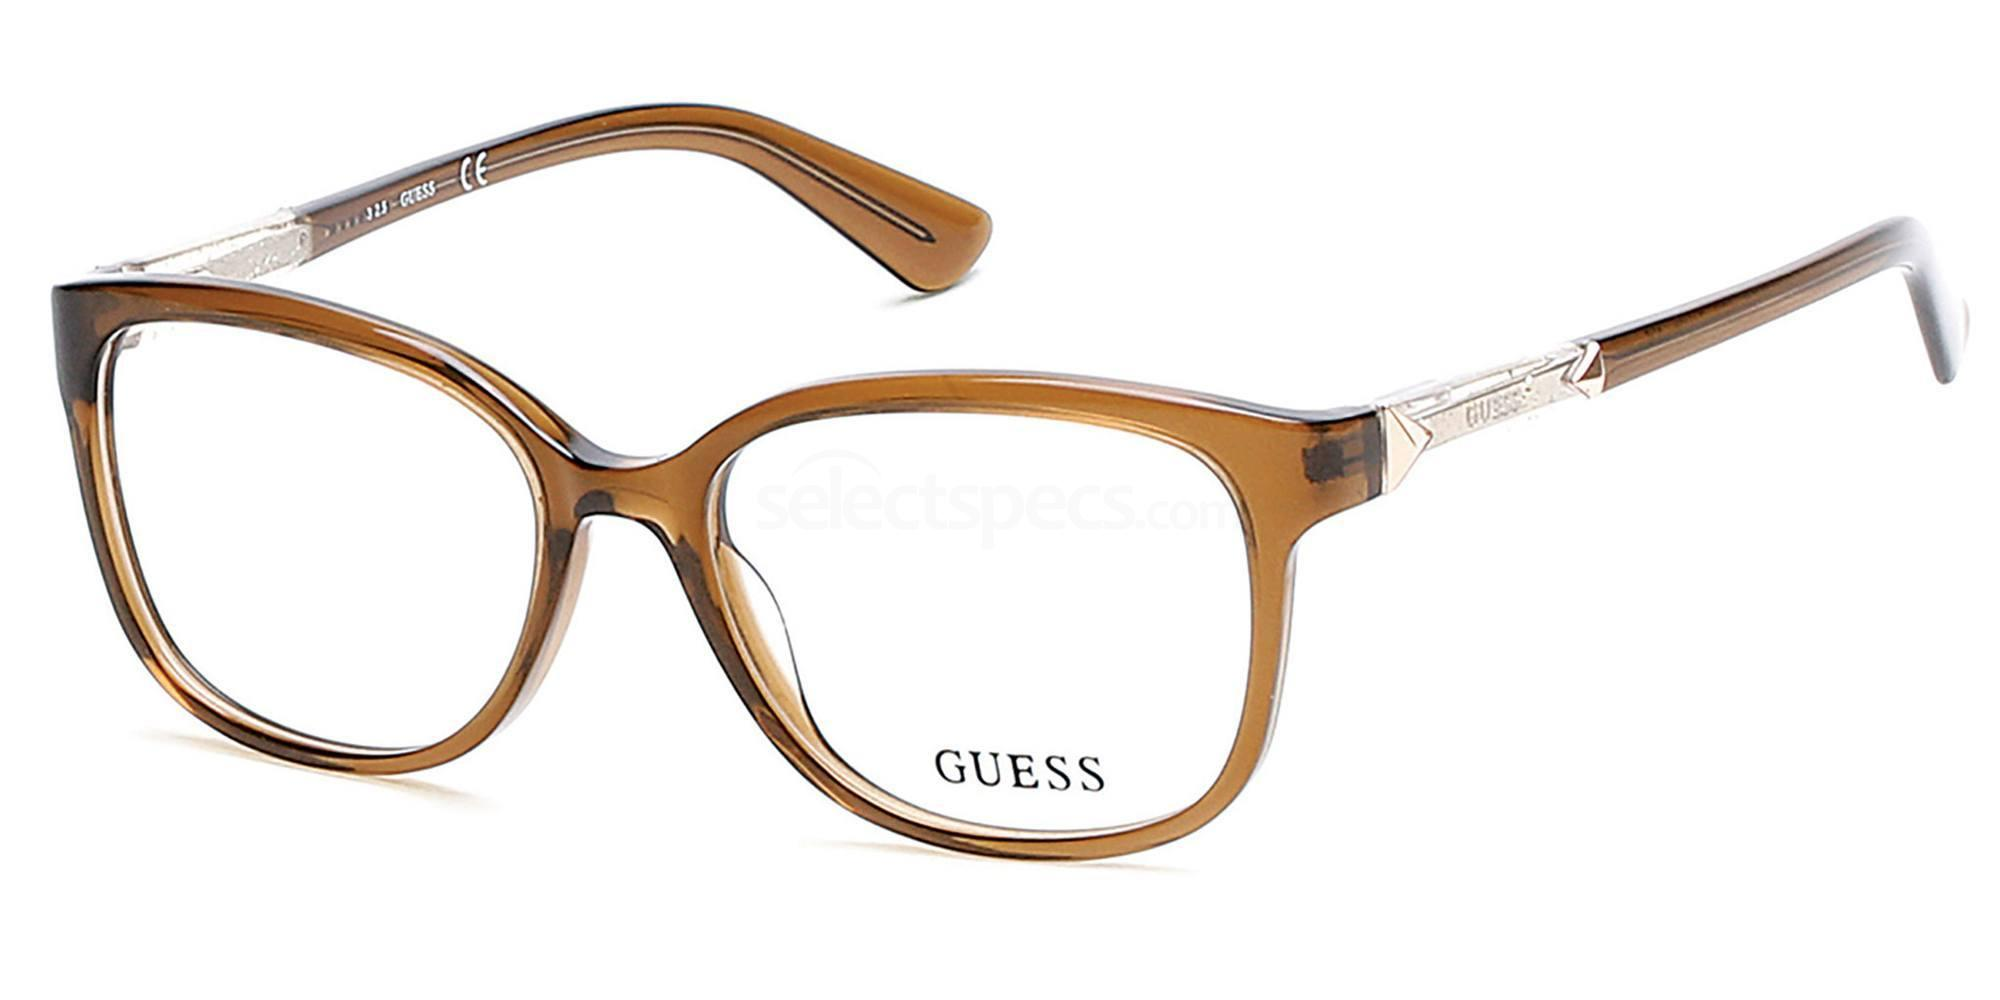 045 GU2560 Glasses, Guess